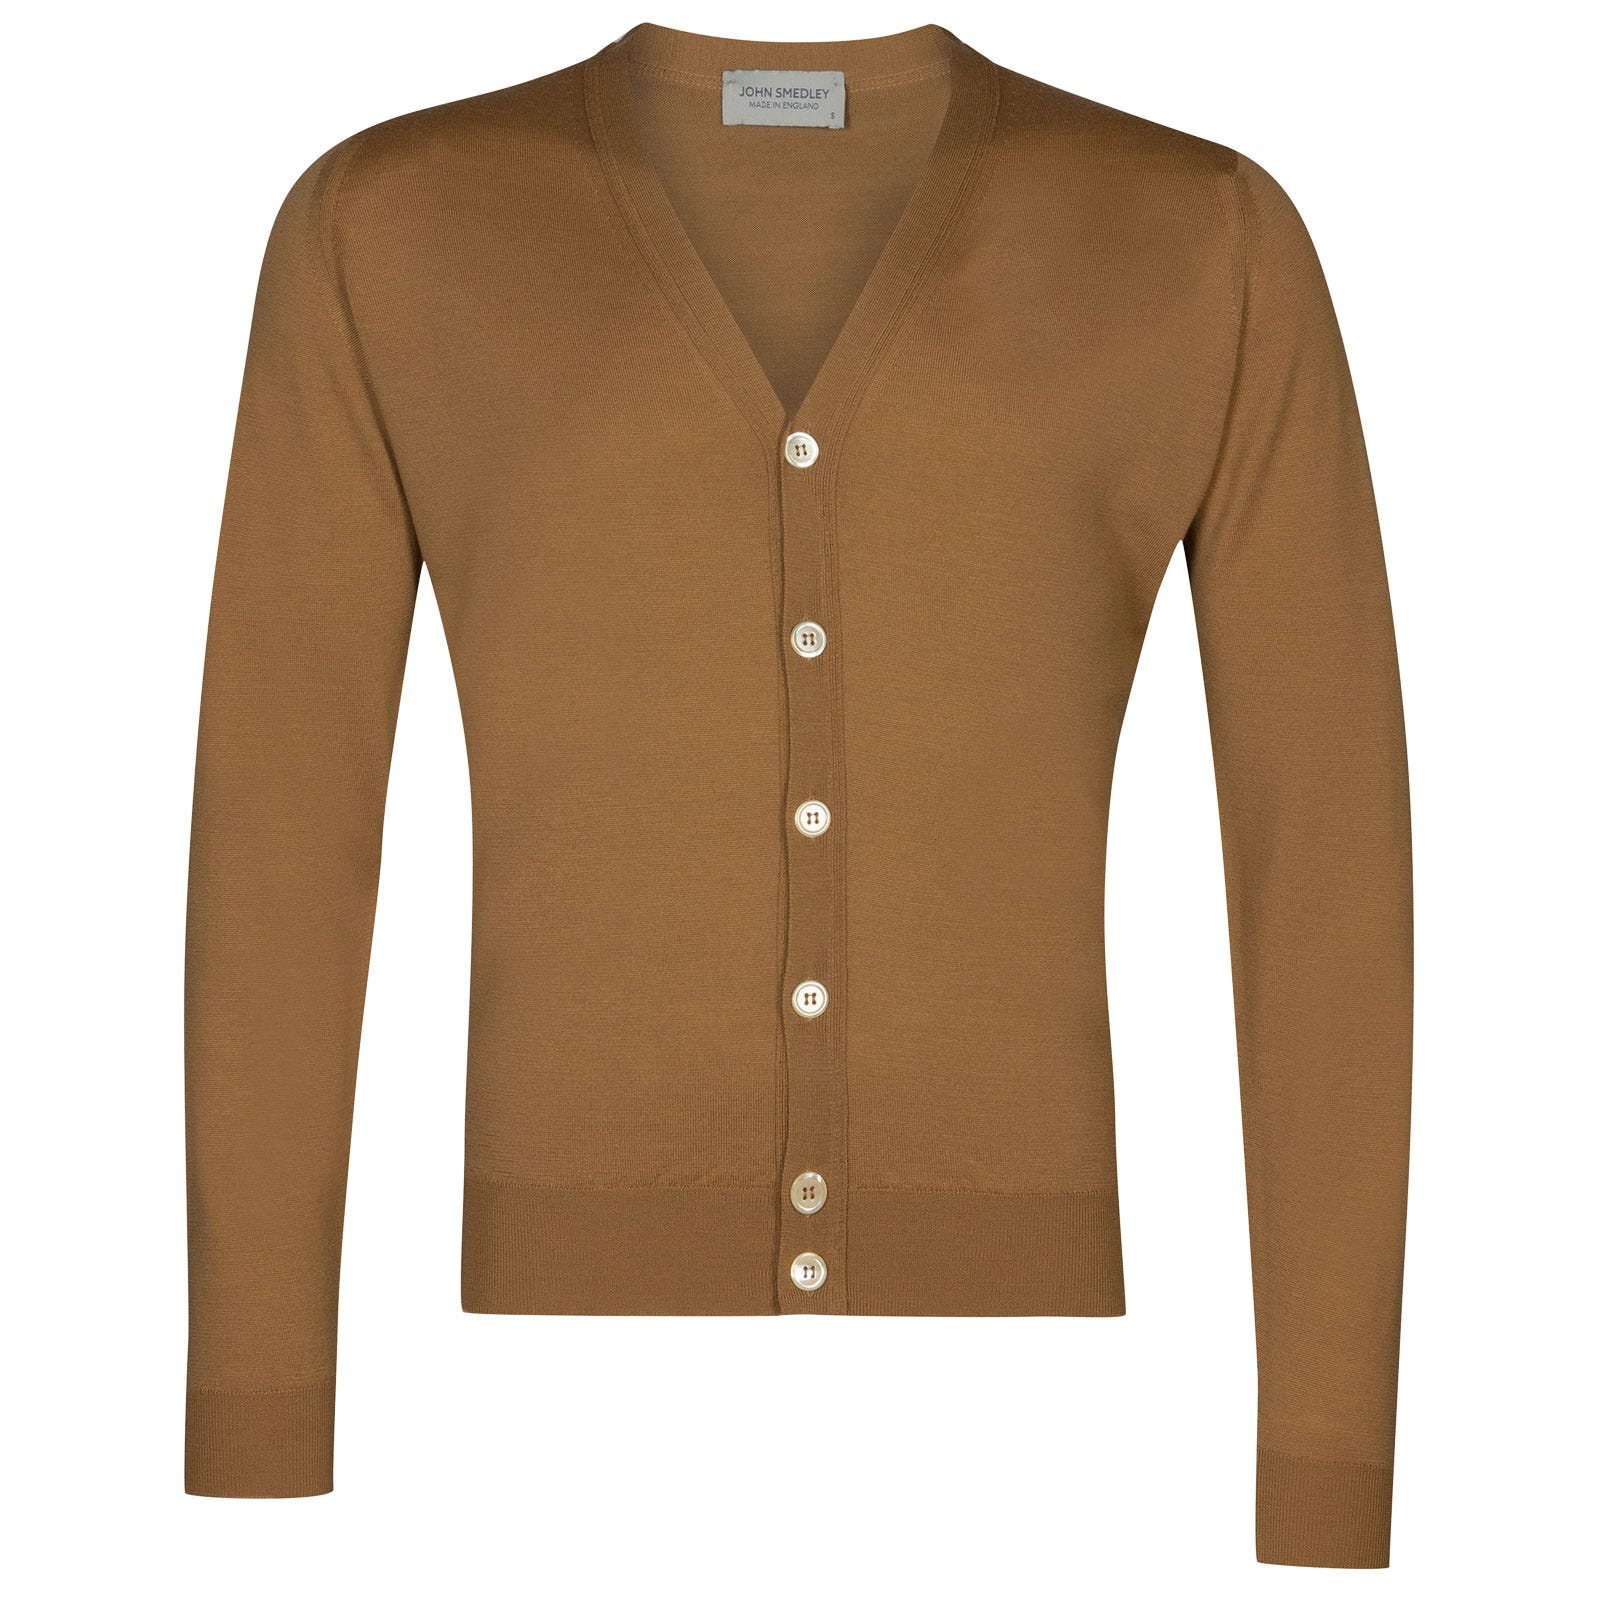 John Smedley naples Merino Wool Cardigan in Camel-XL